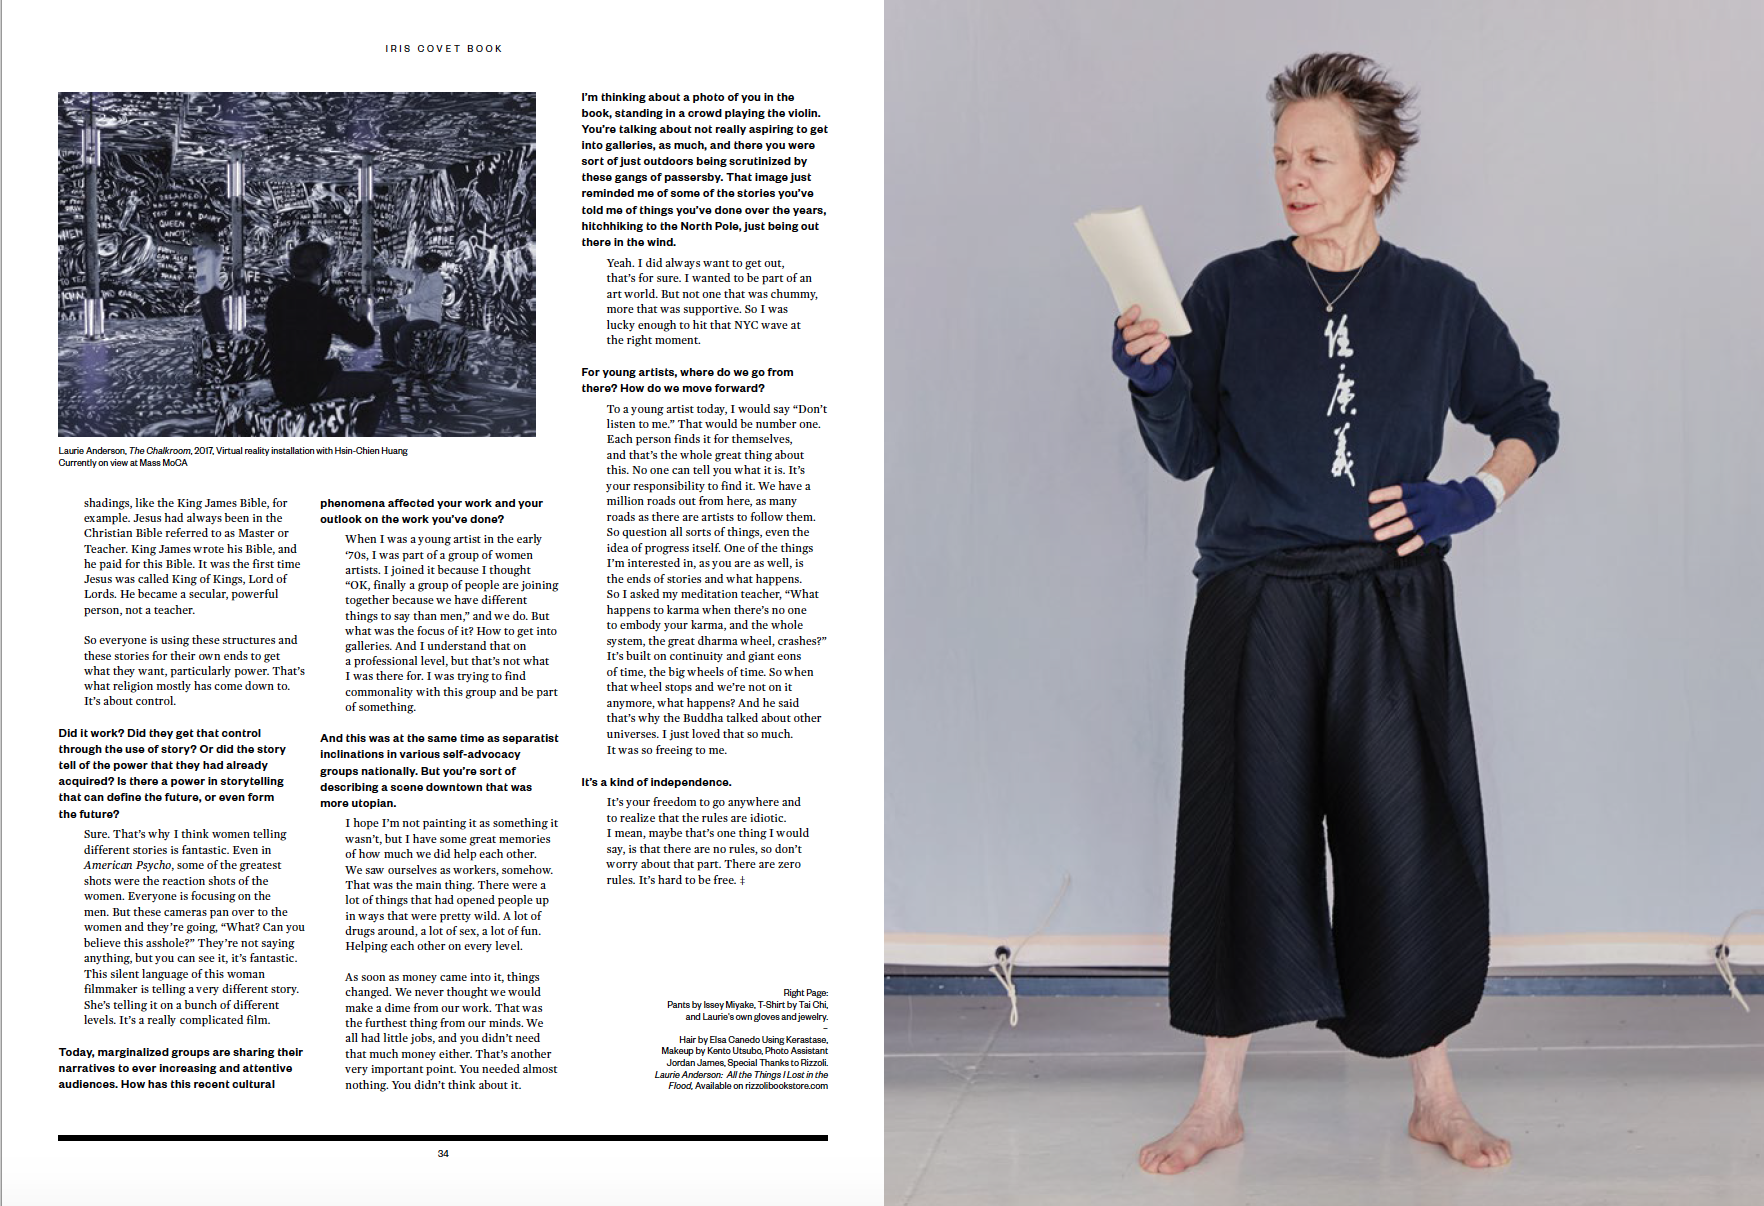 laurie_anderson_4.png